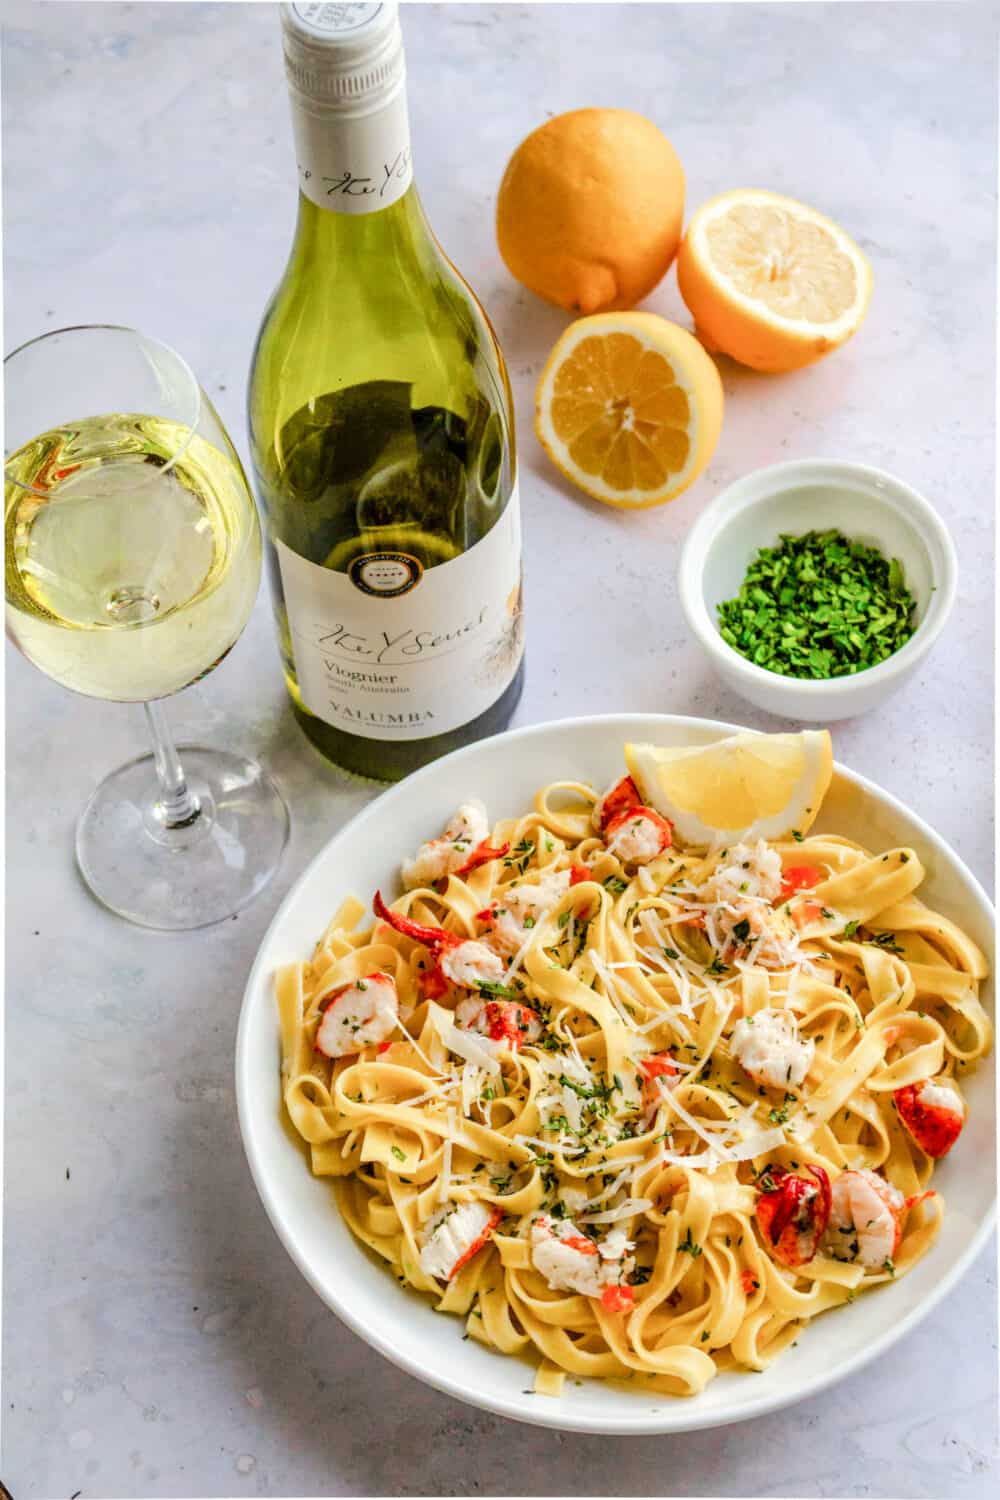 Lobster fettuccine in a bowl with a bottle of vigonier wine and wine glass. past